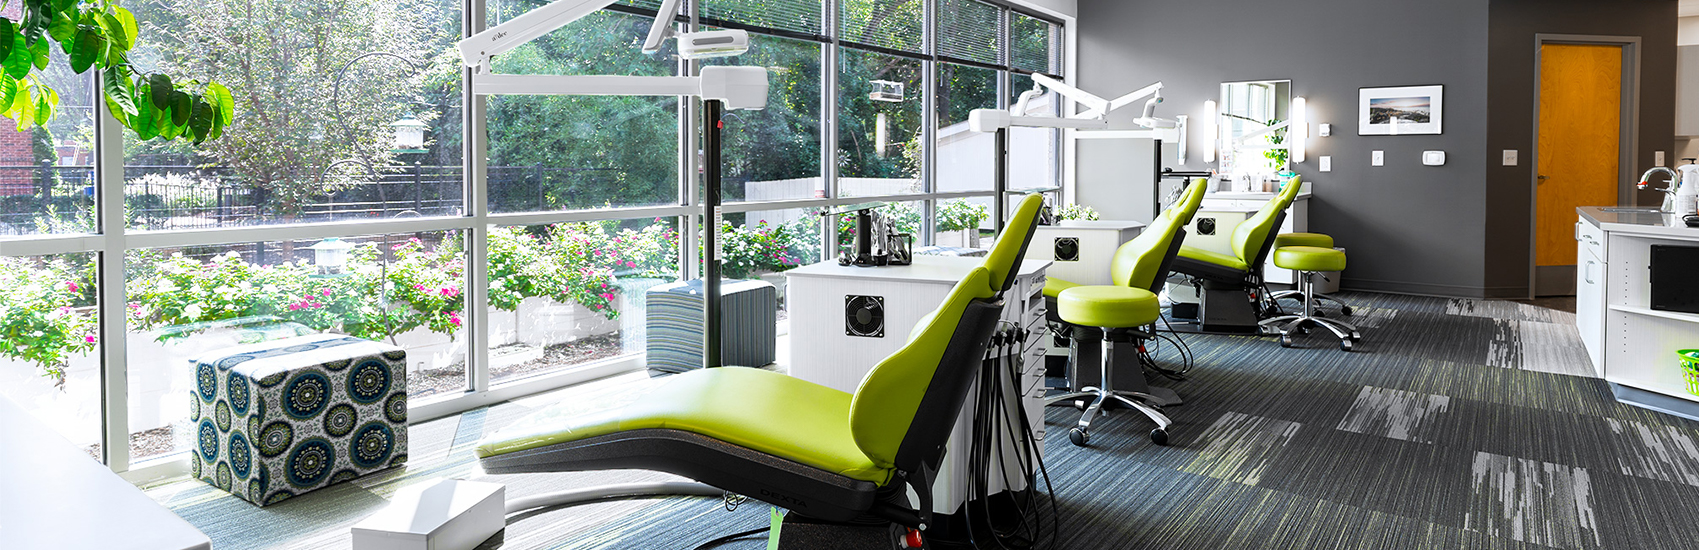 Tour the office of Walton & Maready Orthodontics in Raleigh, NC